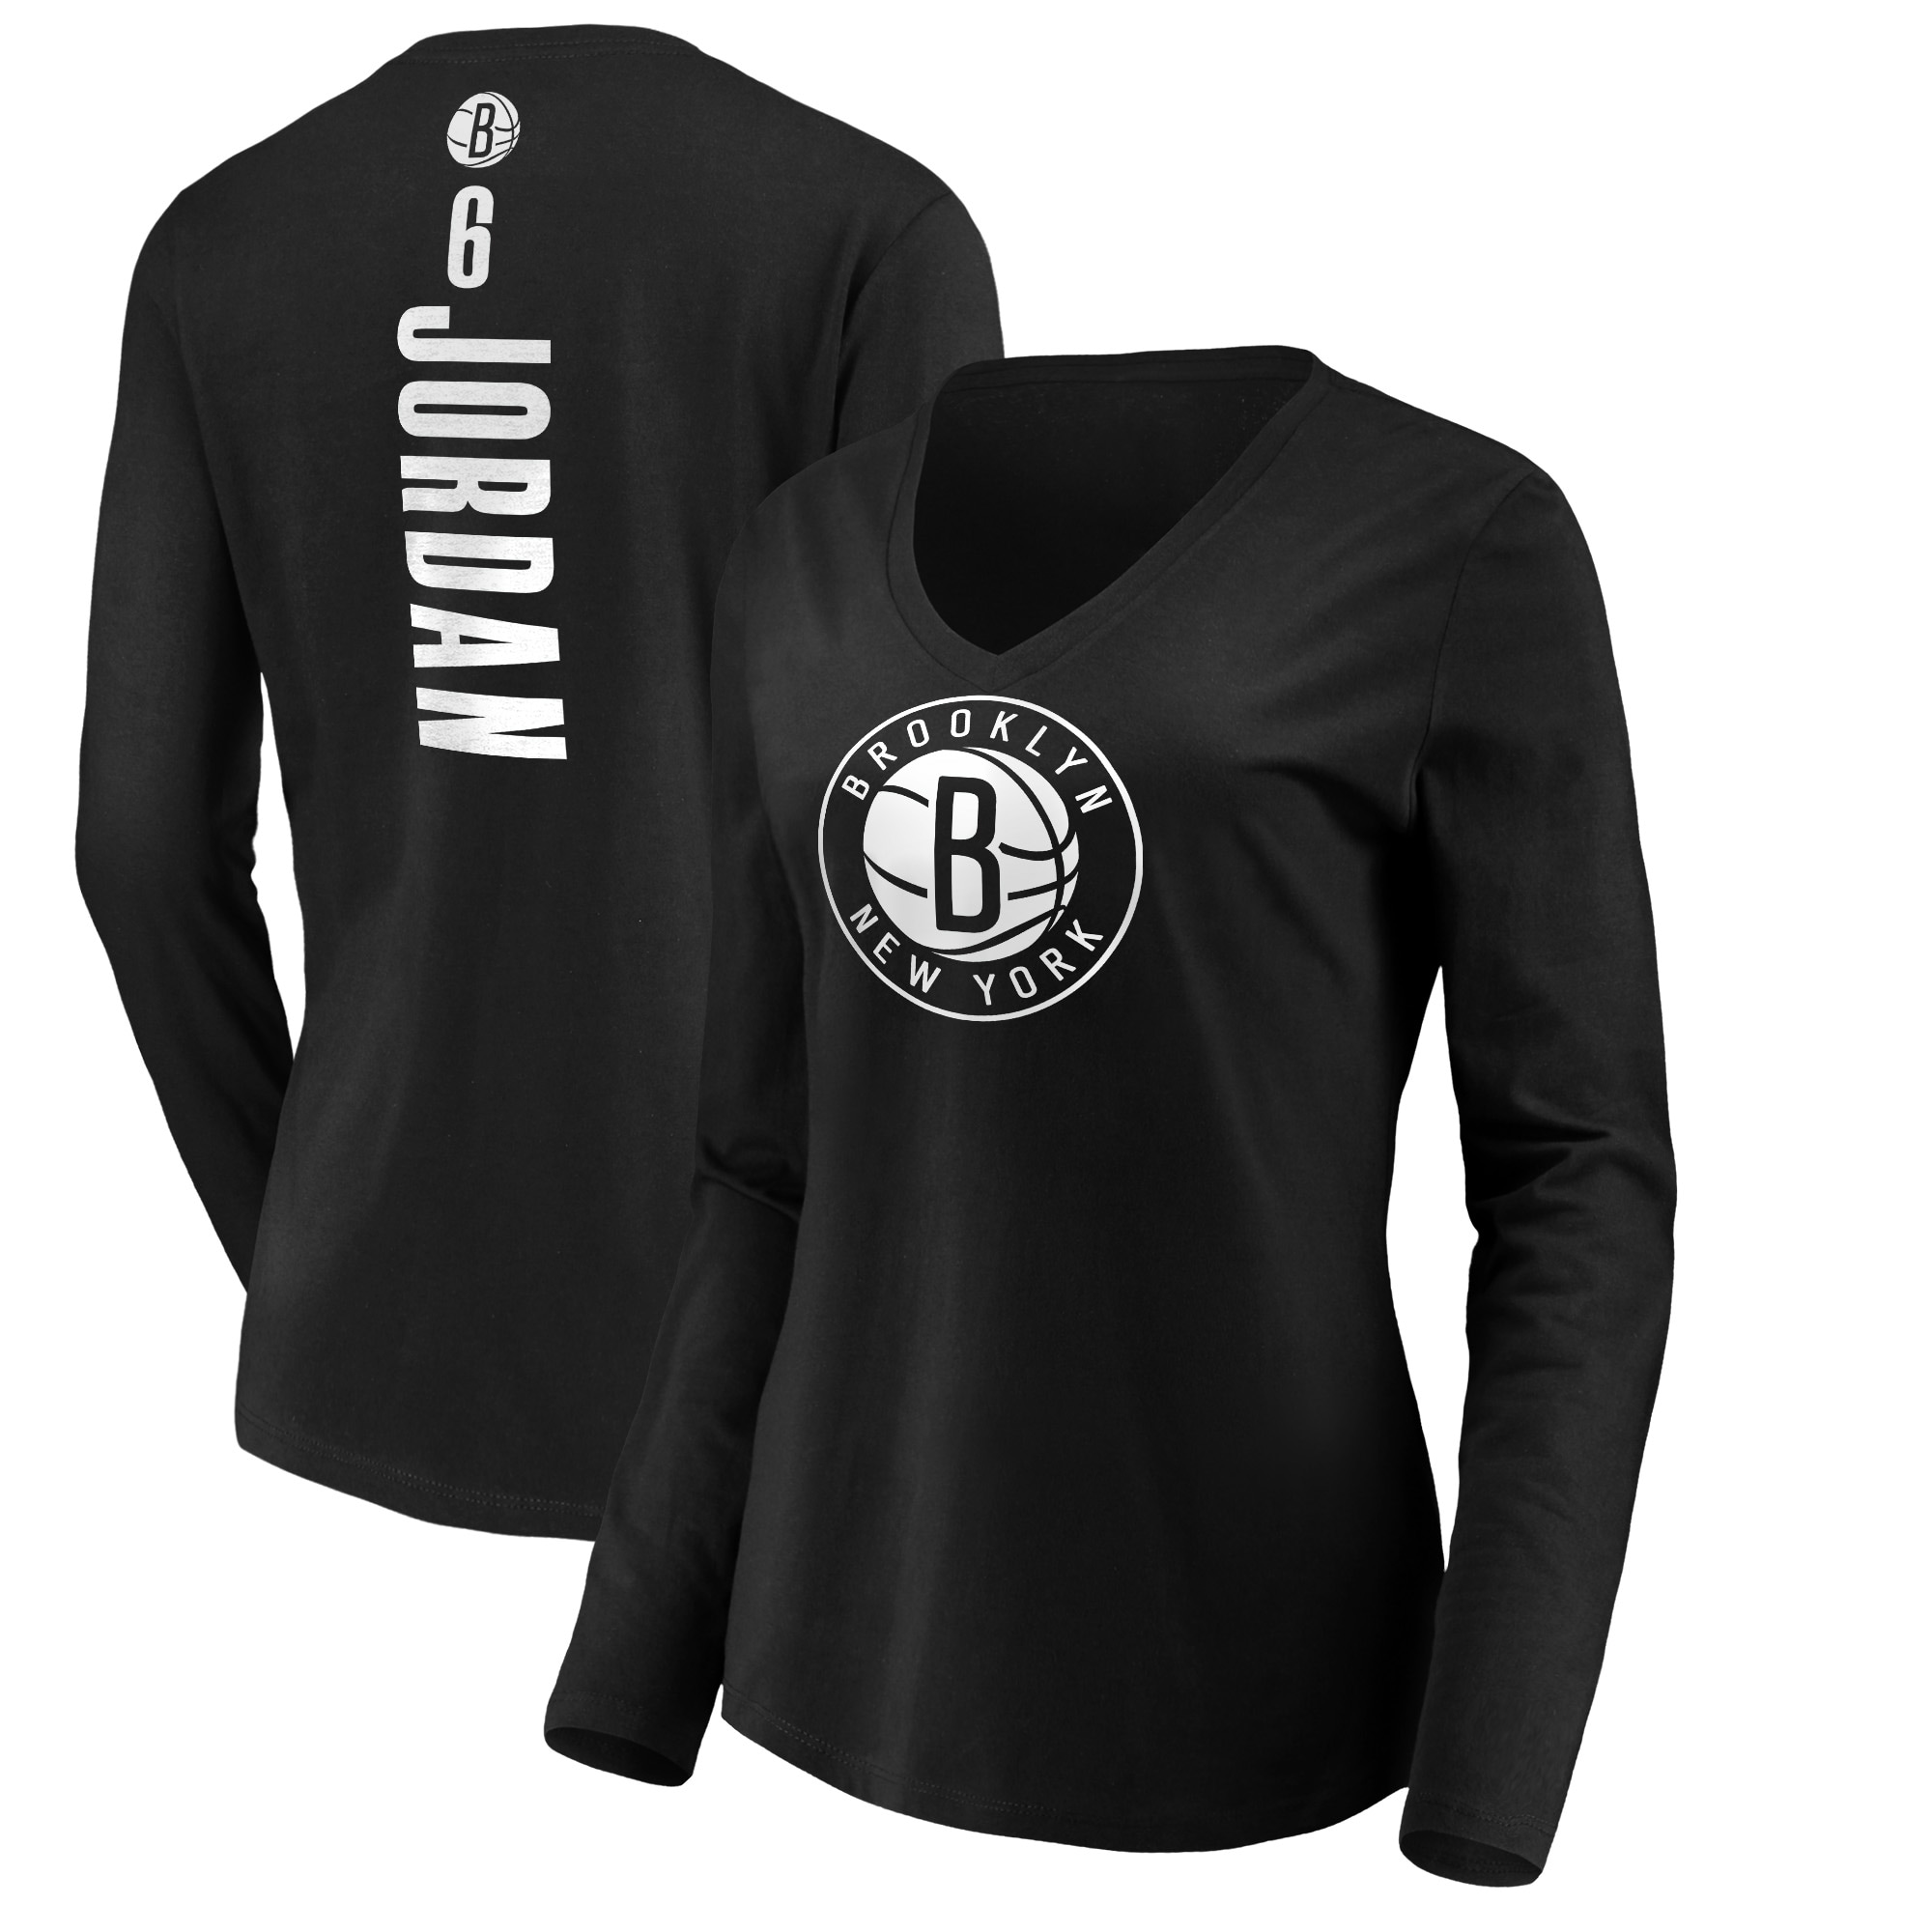 DeAndre Jordan Brooklyn Nets Fanatics Branded Women's Playmaker Name & Number Long Sleeve T-Shirt - Black